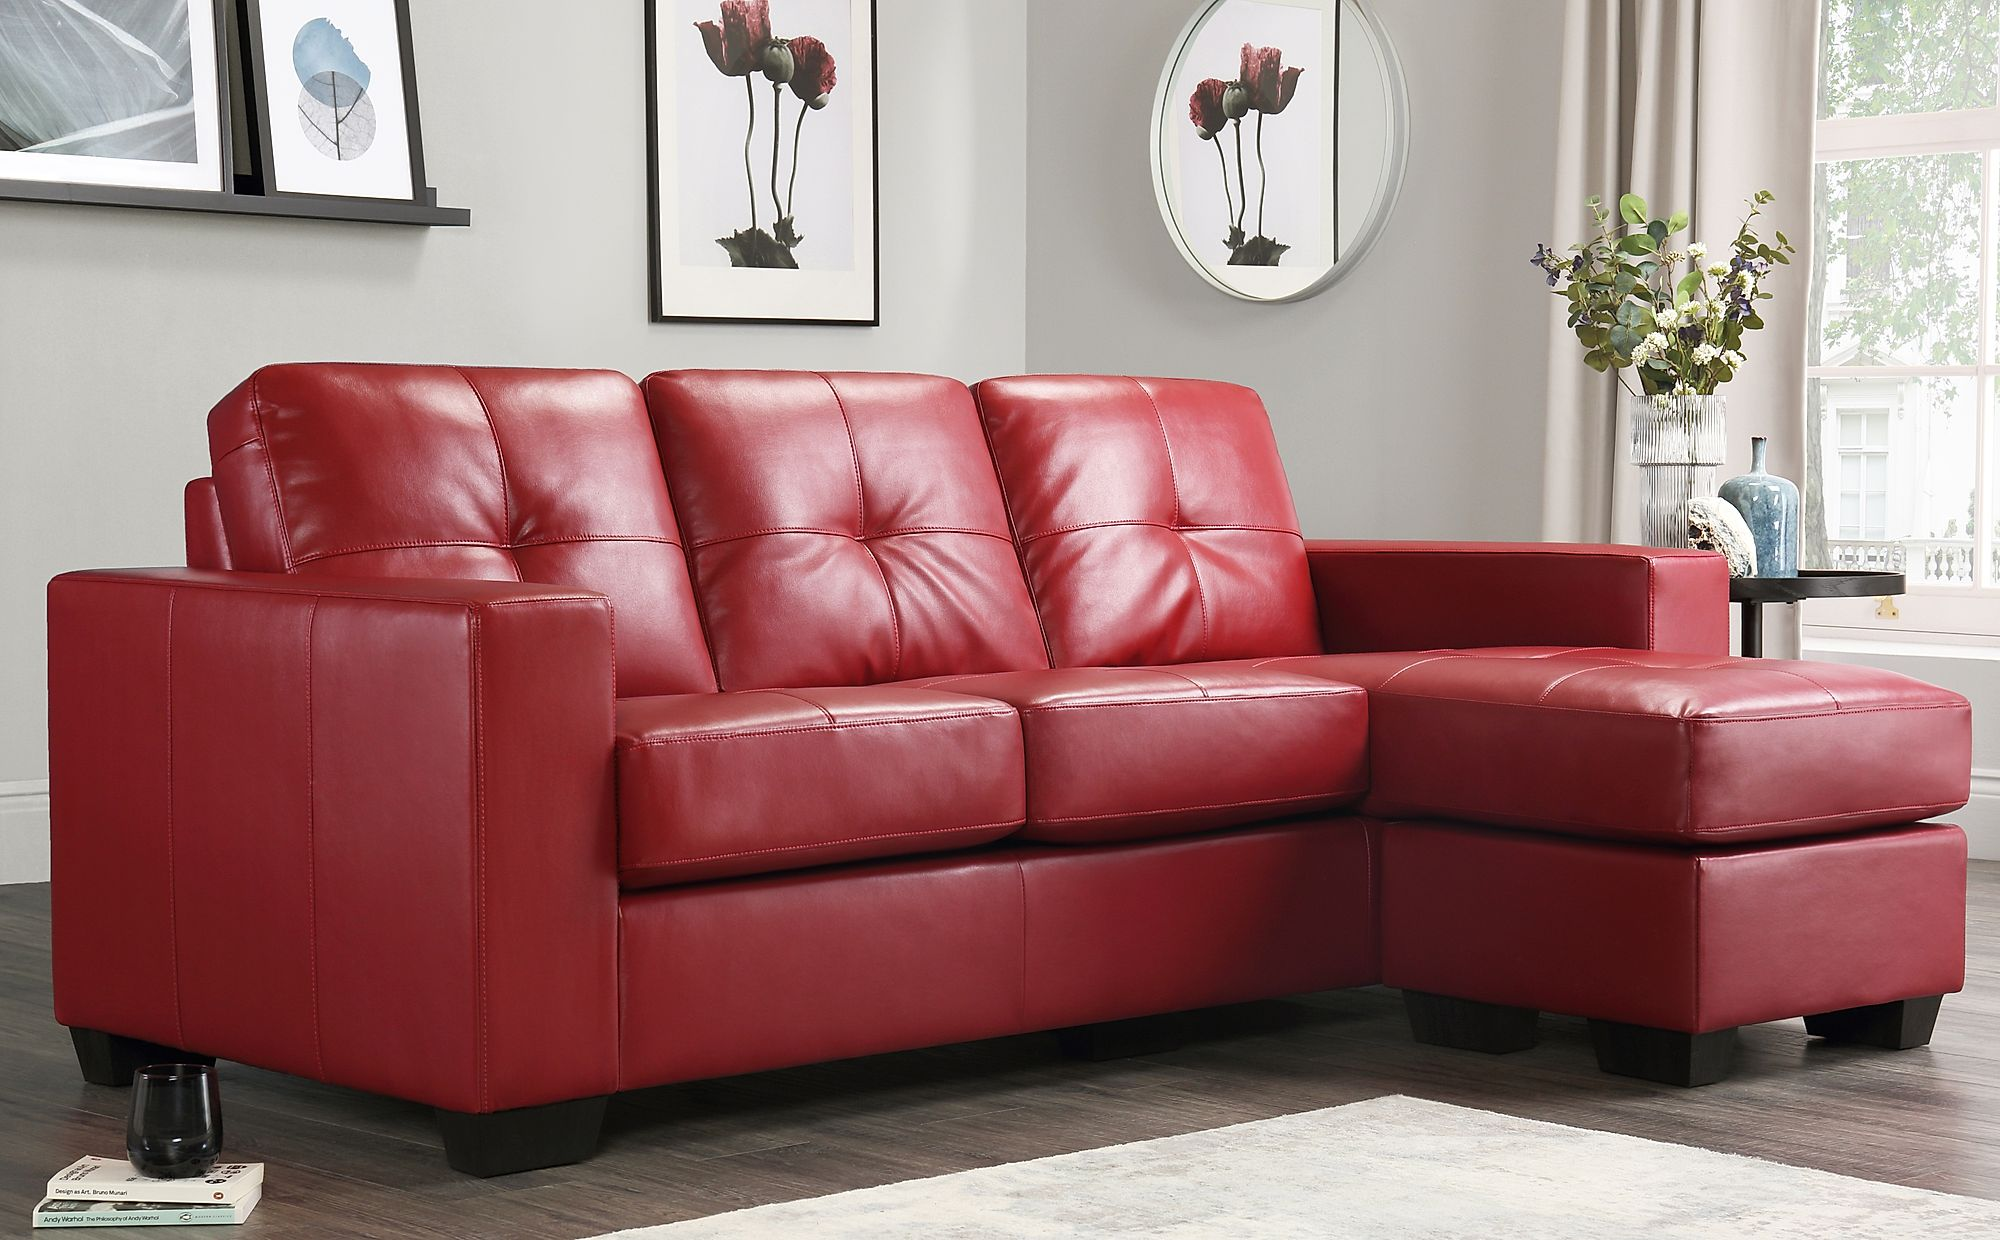 Red Sofas On Sale Cheap Couch For Sleeper Leather Corner ...